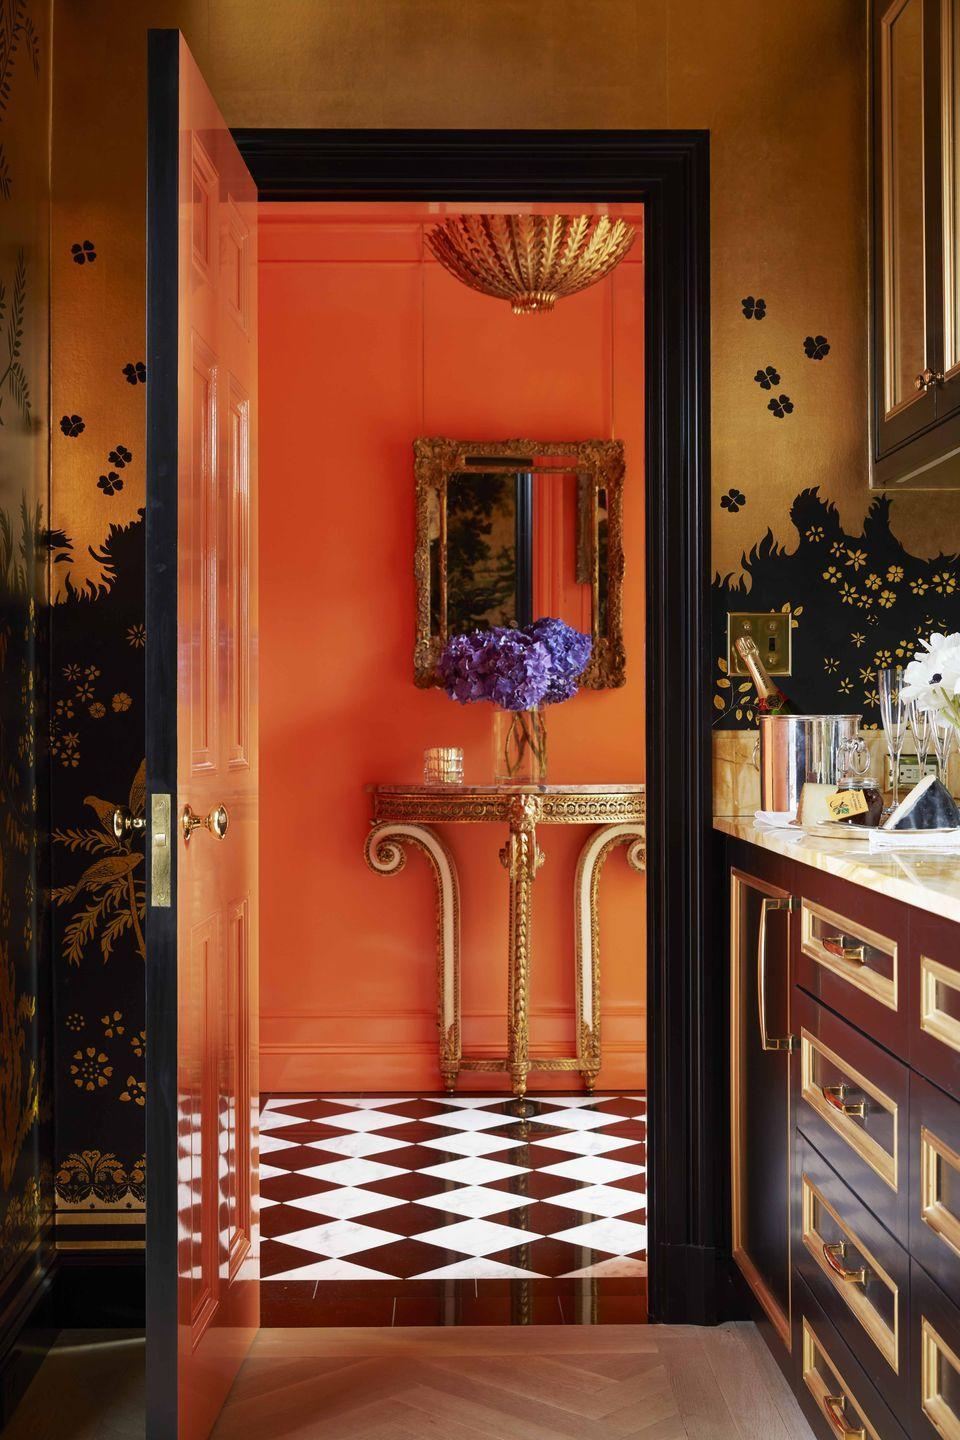 """<p>For the bar in her Manhattan apartment, design historian and author <a href=""""https://maureenfooter.com/"""" rel=""""nofollow noopener"""" target=""""_blank"""" data-ylk=""""slk:Maureen Footer"""" class=""""link rapid-noclick-resp"""">Maureen Footer</a> chose a custom wallpaper inspired by the work of Armand-Albert Rateau, a French furniture and interior designer who helped popularize the Art Deco movement. The Louis XVI console is from <a href=""""http://www.delvaille.art/"""" rel=""""nofollow noopener"""" target=""""_blank"""" data-ylk=""""slk:Galerie Delvaille"""" class=""""link rapid-noclick-resp"""">Galerie Delvaille</a>; the pendant light is by <a href=""""https://www.circalighting.com/our-designers/aerin/"""" rel=""""nofollow noopener"""" target=""""_blank"""" data-ylk=""""slk:Aerin for Visual Comfort"""" class=""""link rapid-noclick-resp"""">Aerin for Visual Comfort</a>. </p>"""